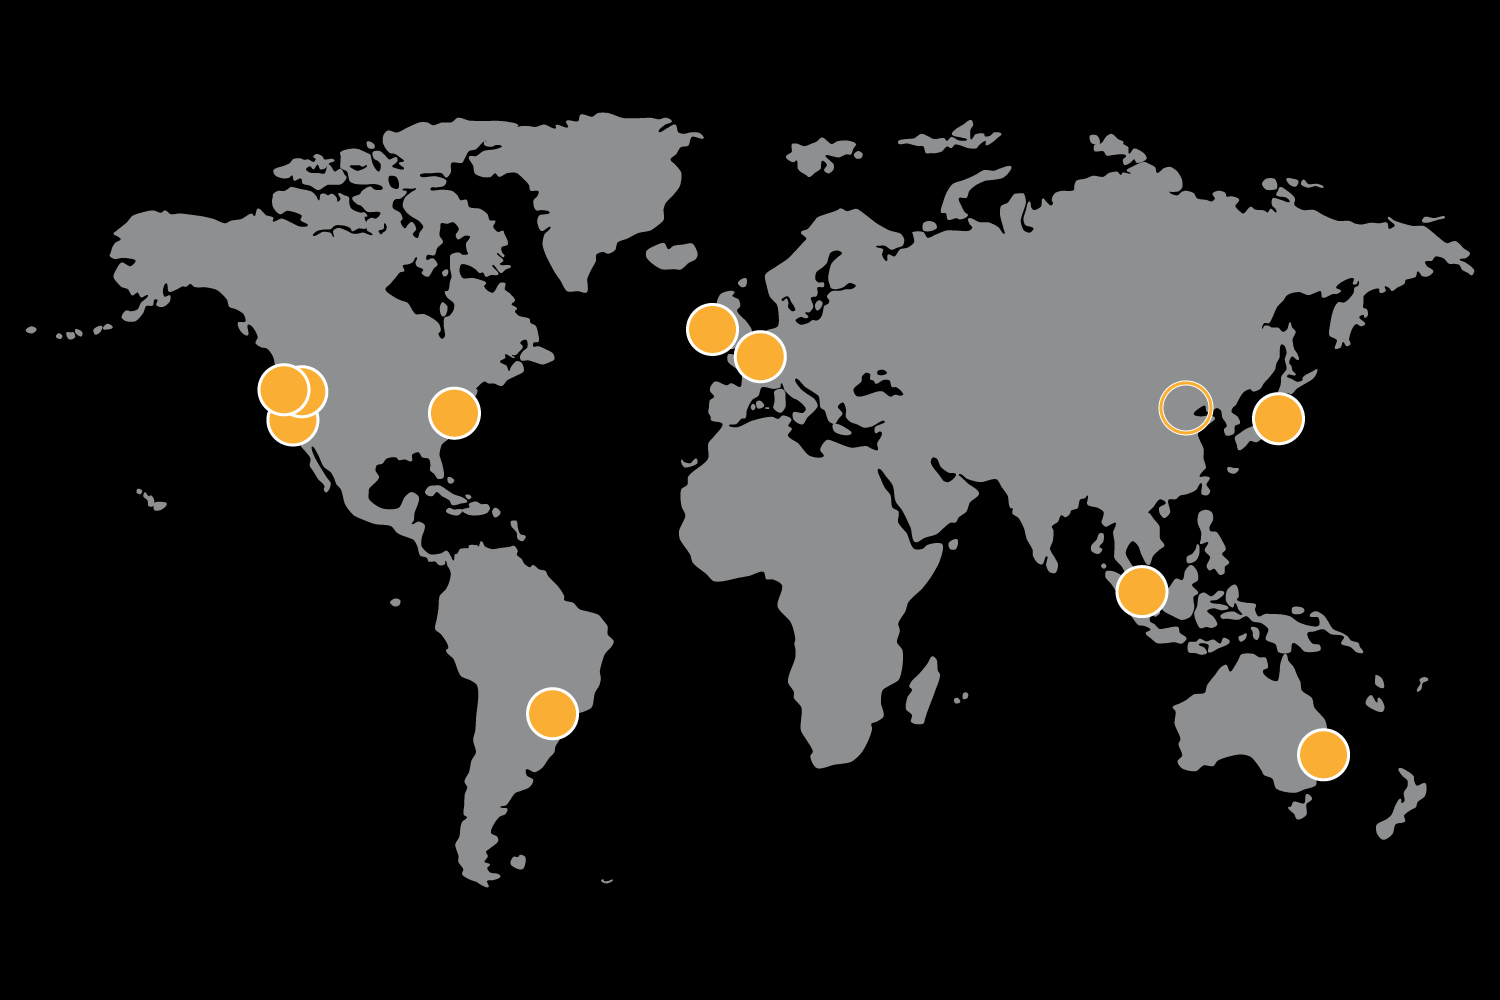 AWS Global Infrastructure 11 Regions